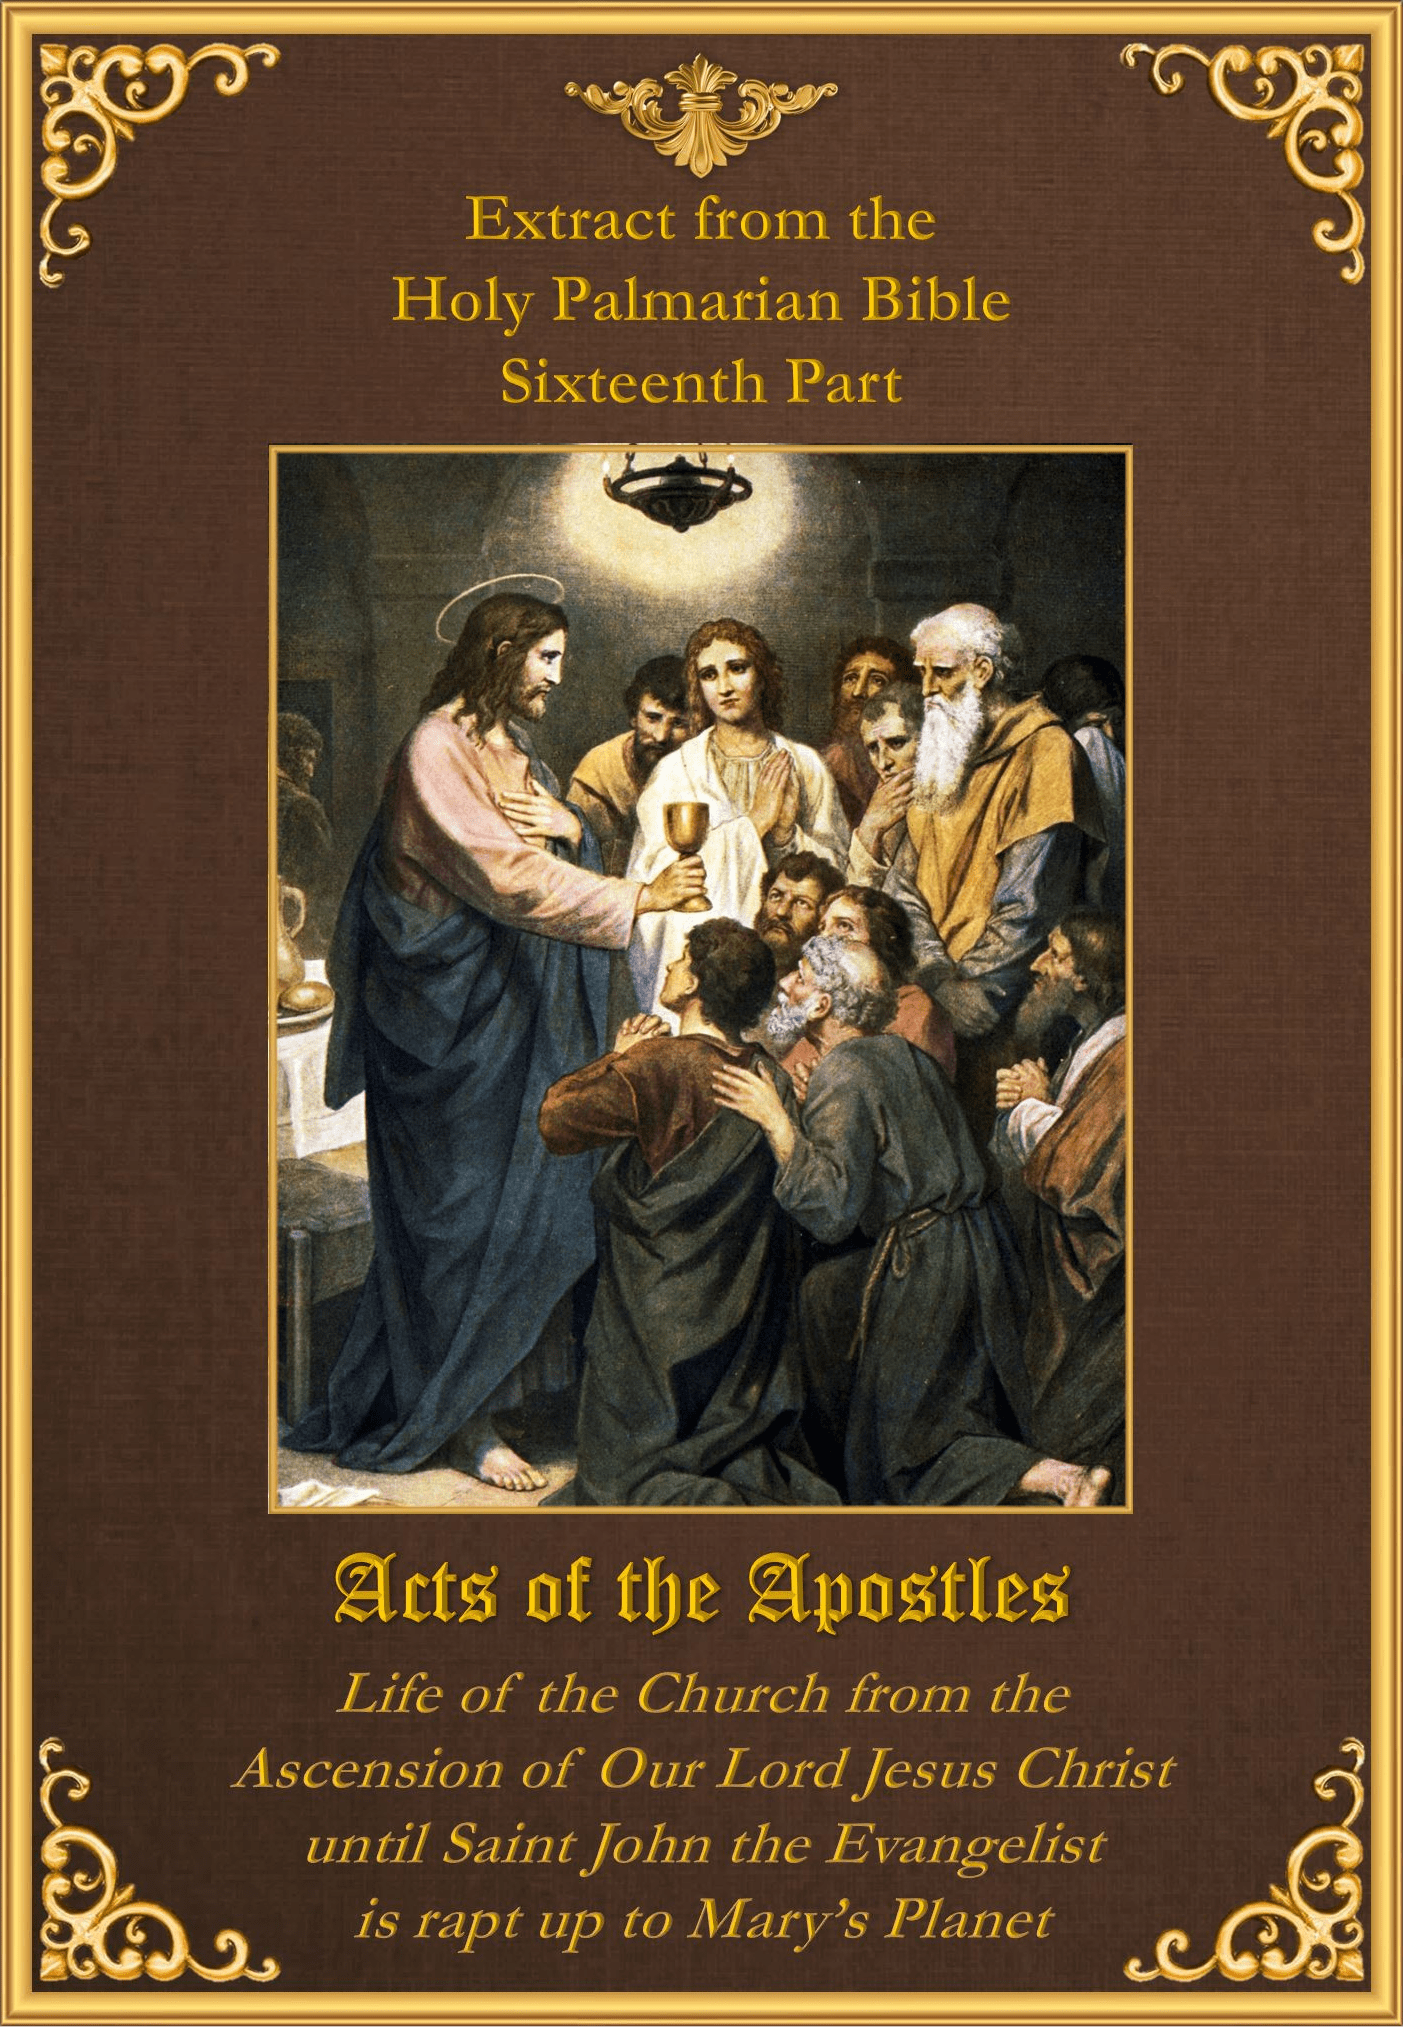 "<a href=""https://www.eglisepalmarienne.org/wp-content/uploads/2019/06/Acts-of-the-Apostles-English.pdf"" title=""Acts of the Apostles"">Acts of the Apostles<br><br>En Savoir Plus</a>"